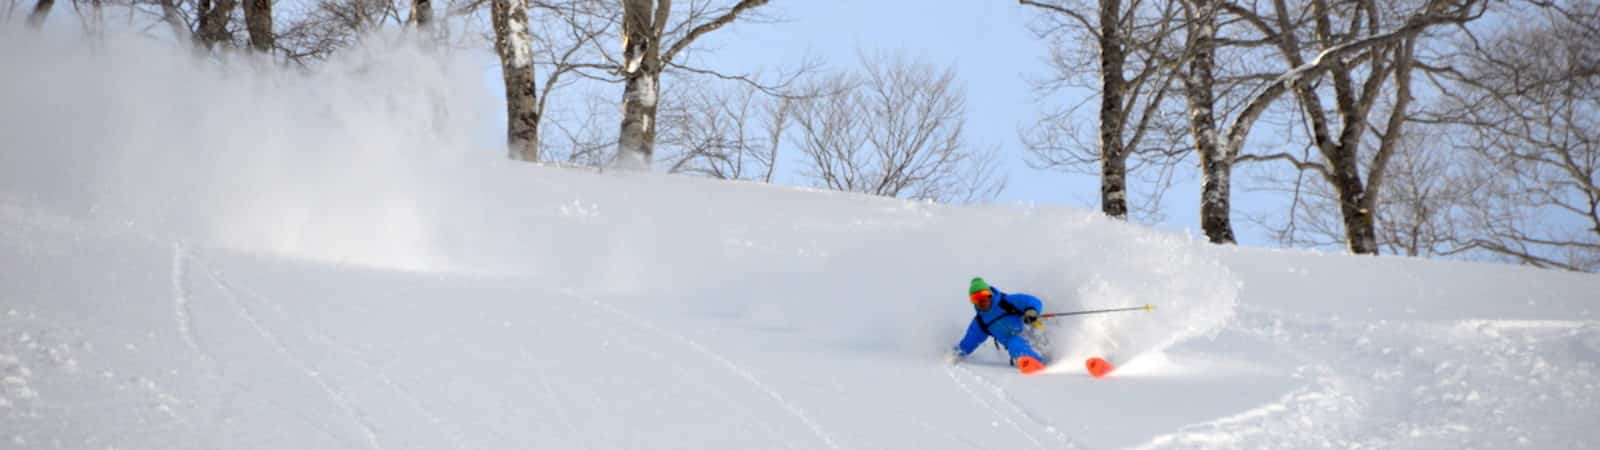 Freeride skiing in Gunma and Nigata